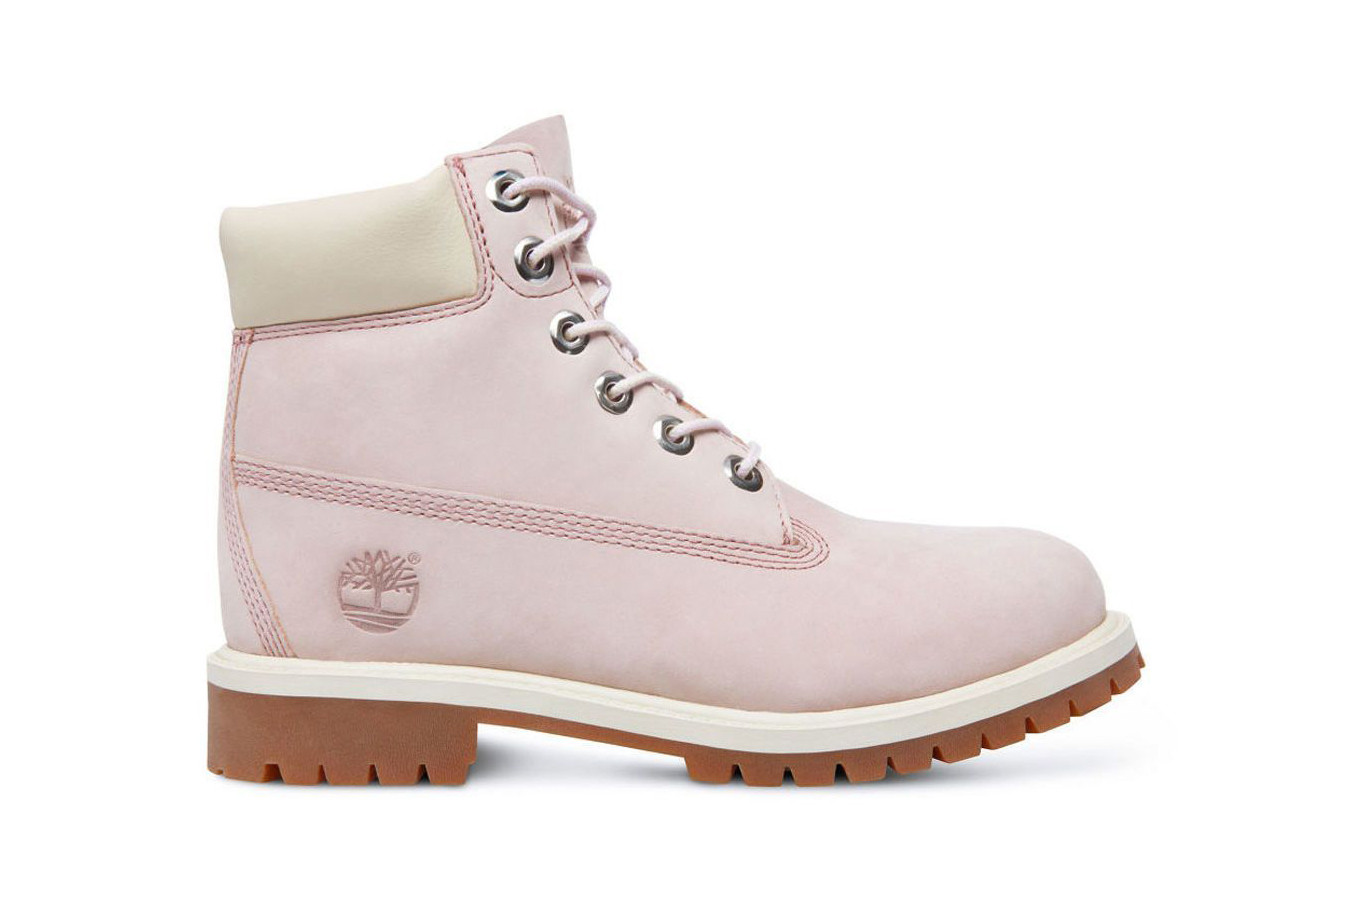 Timberland Boots Get Swathed in